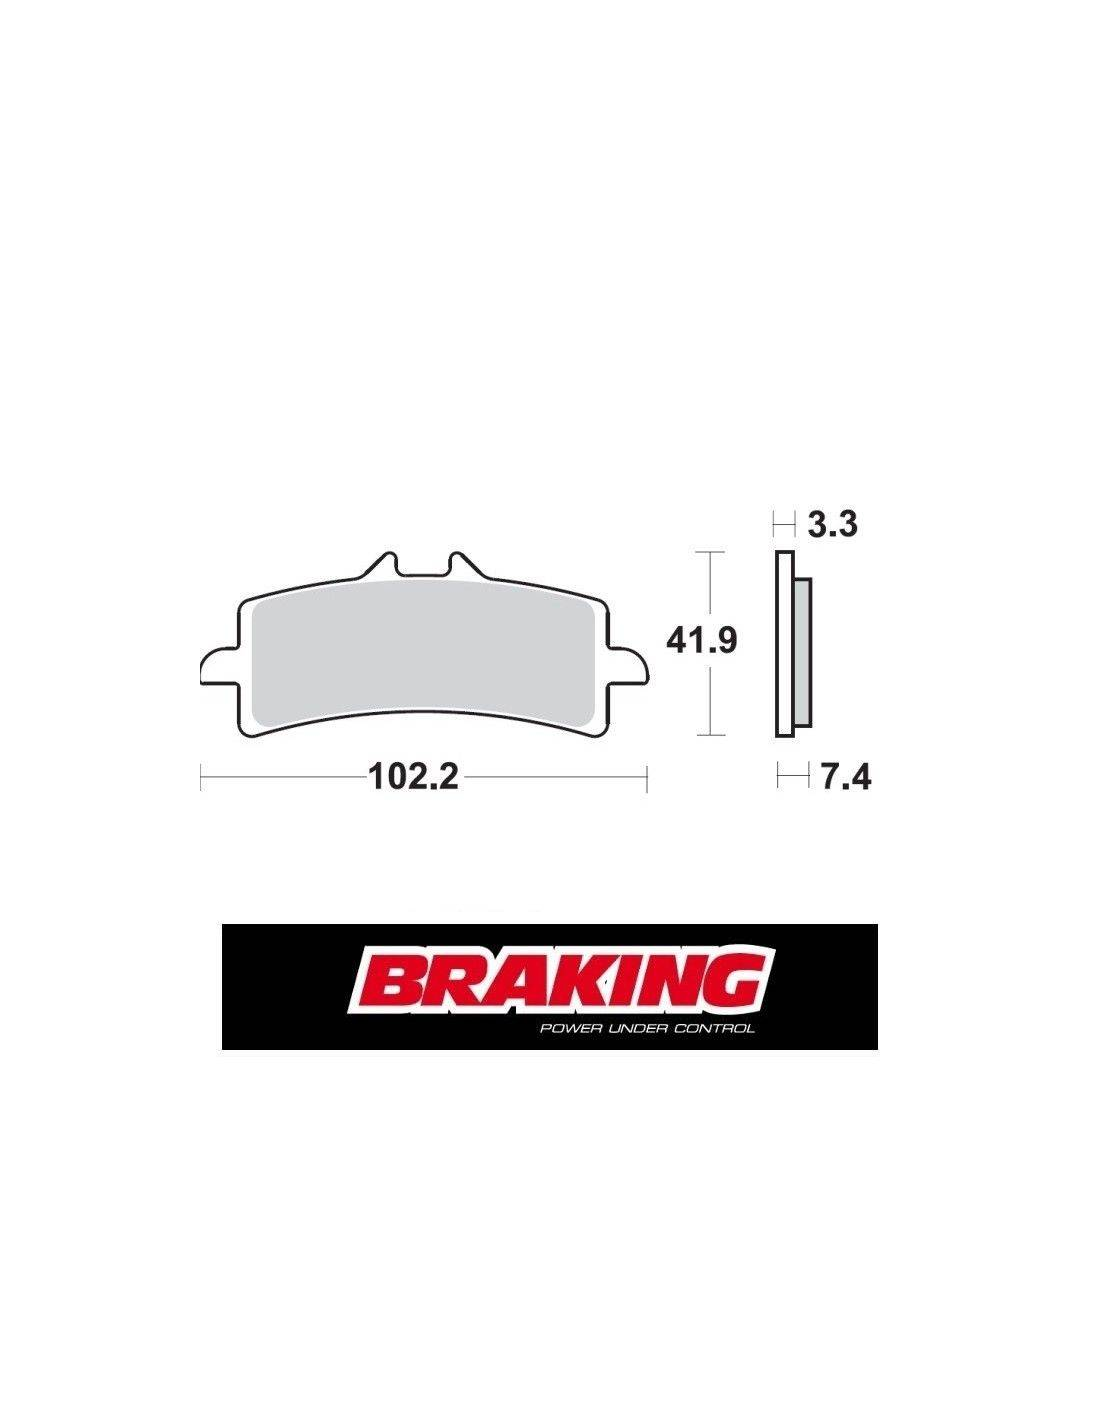 Braking P1R racing brake pads Husqvarna Nuda 900 R ABS 2013